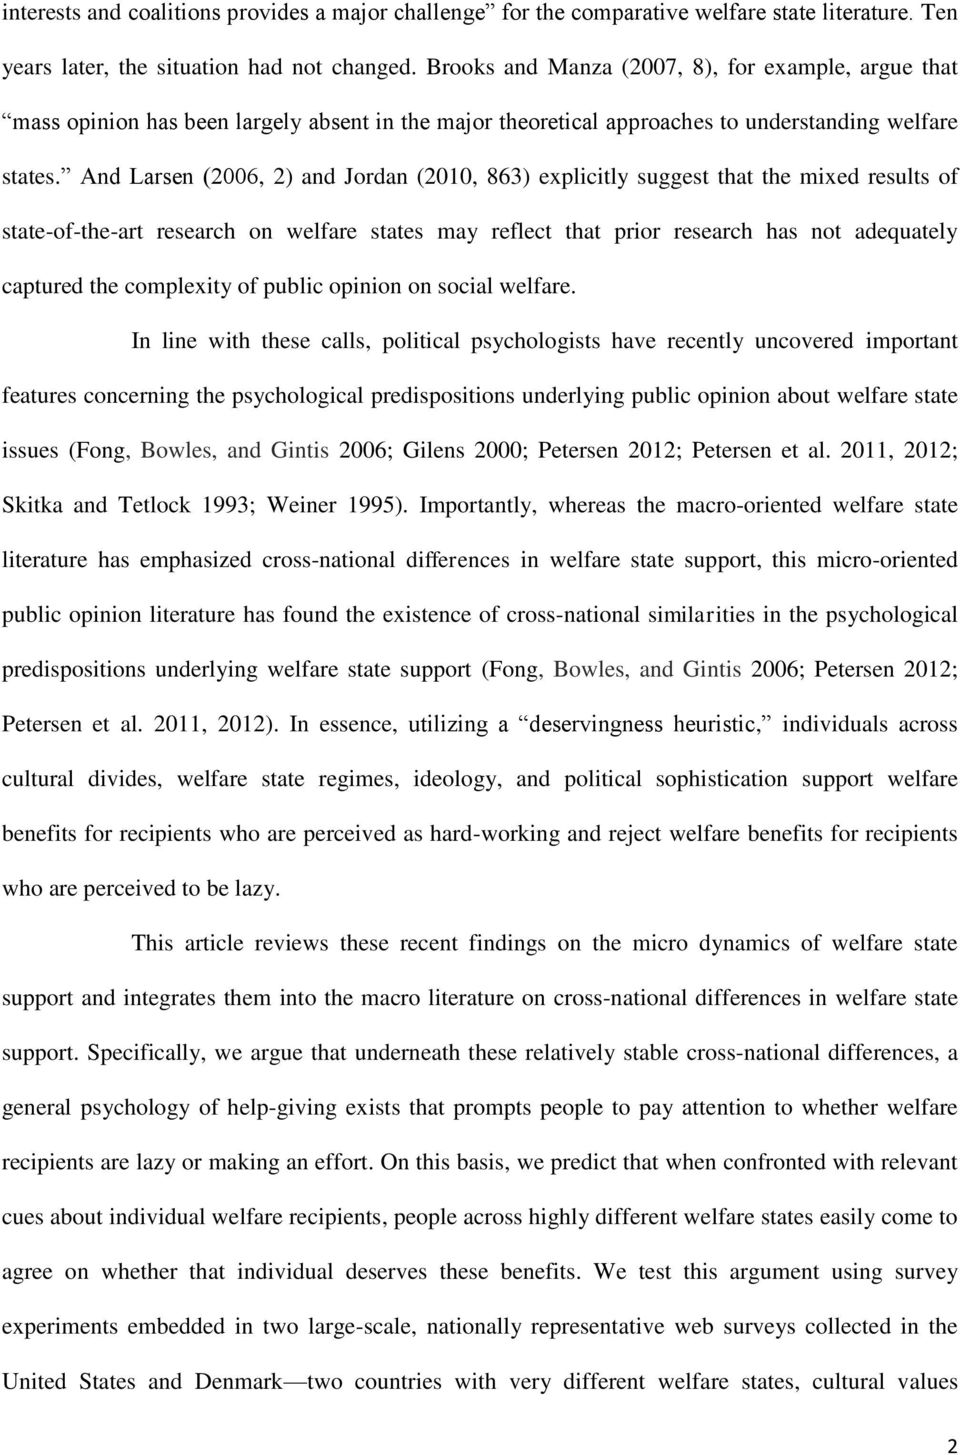 And Larsen (2006, 2) and Jordan (2010, 863) explicitly suggest that the mixed results of state-of-the-art research on welfare states may reflect that prior research has not adequately captured the